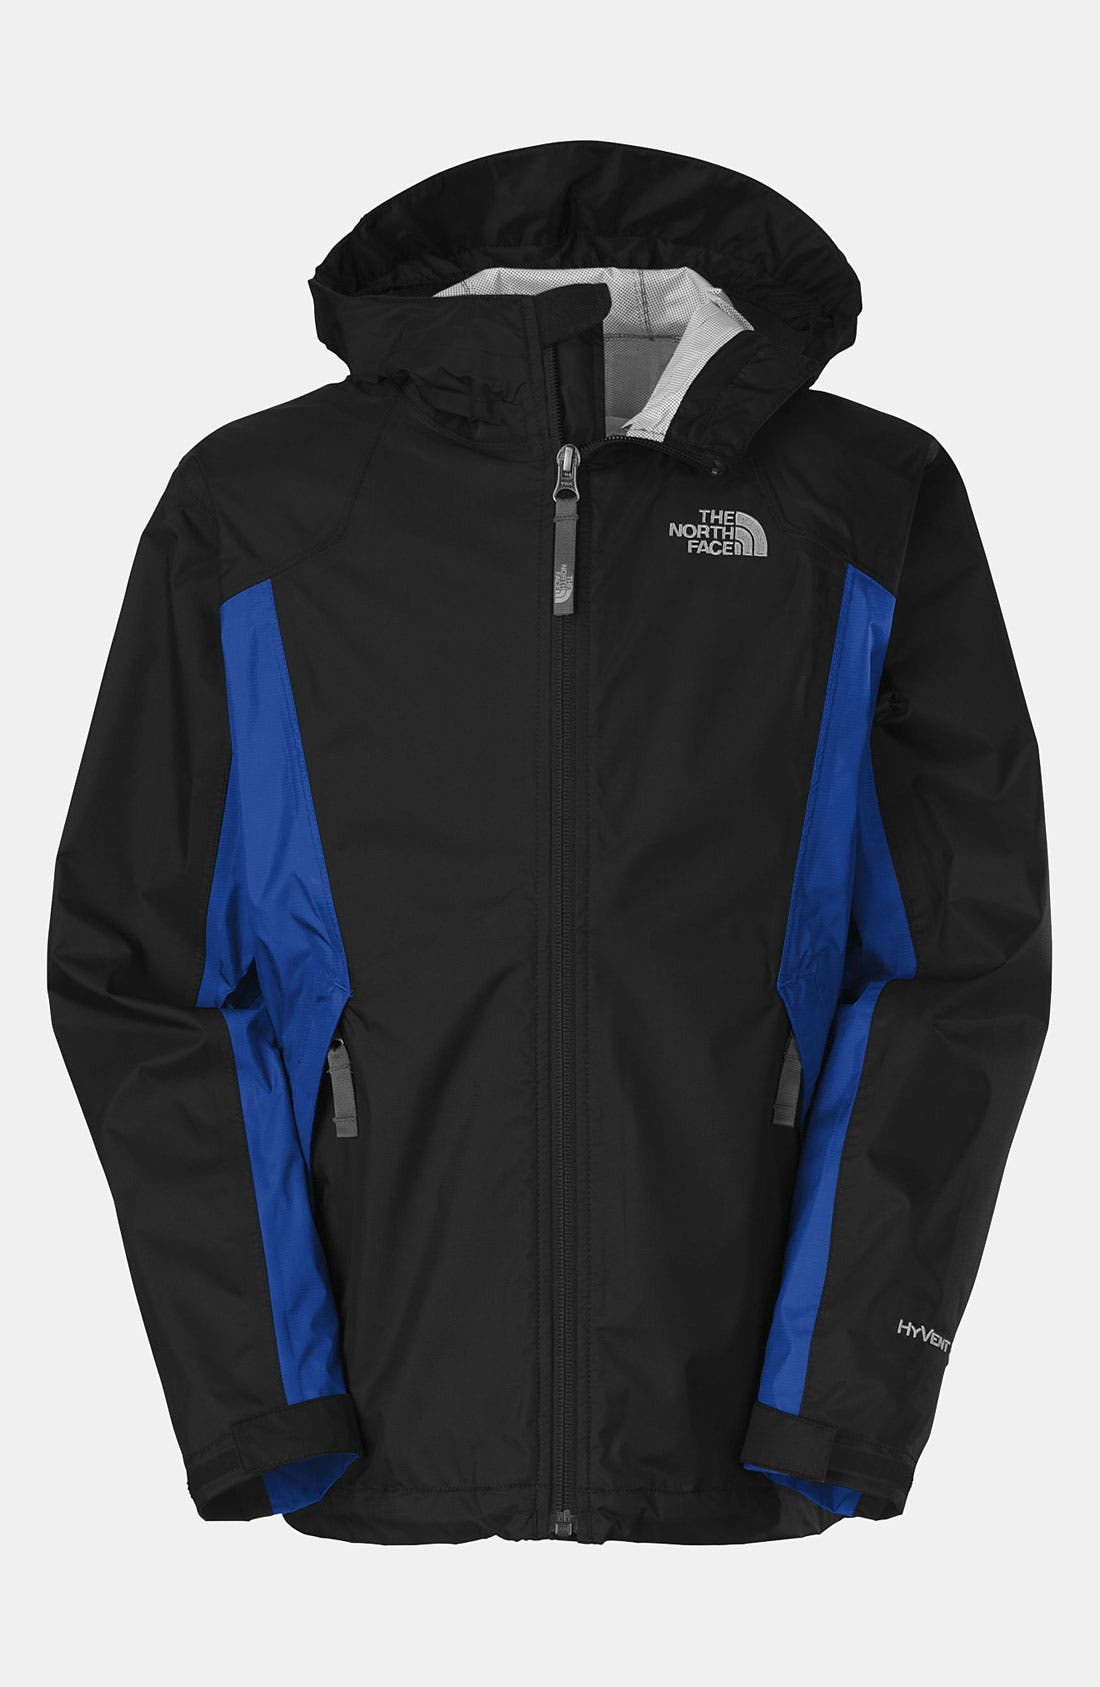 Alternate Image 1 Selected - The North Face 'Hydraspace' Rain Jacket (Little Boys & Big Boys)